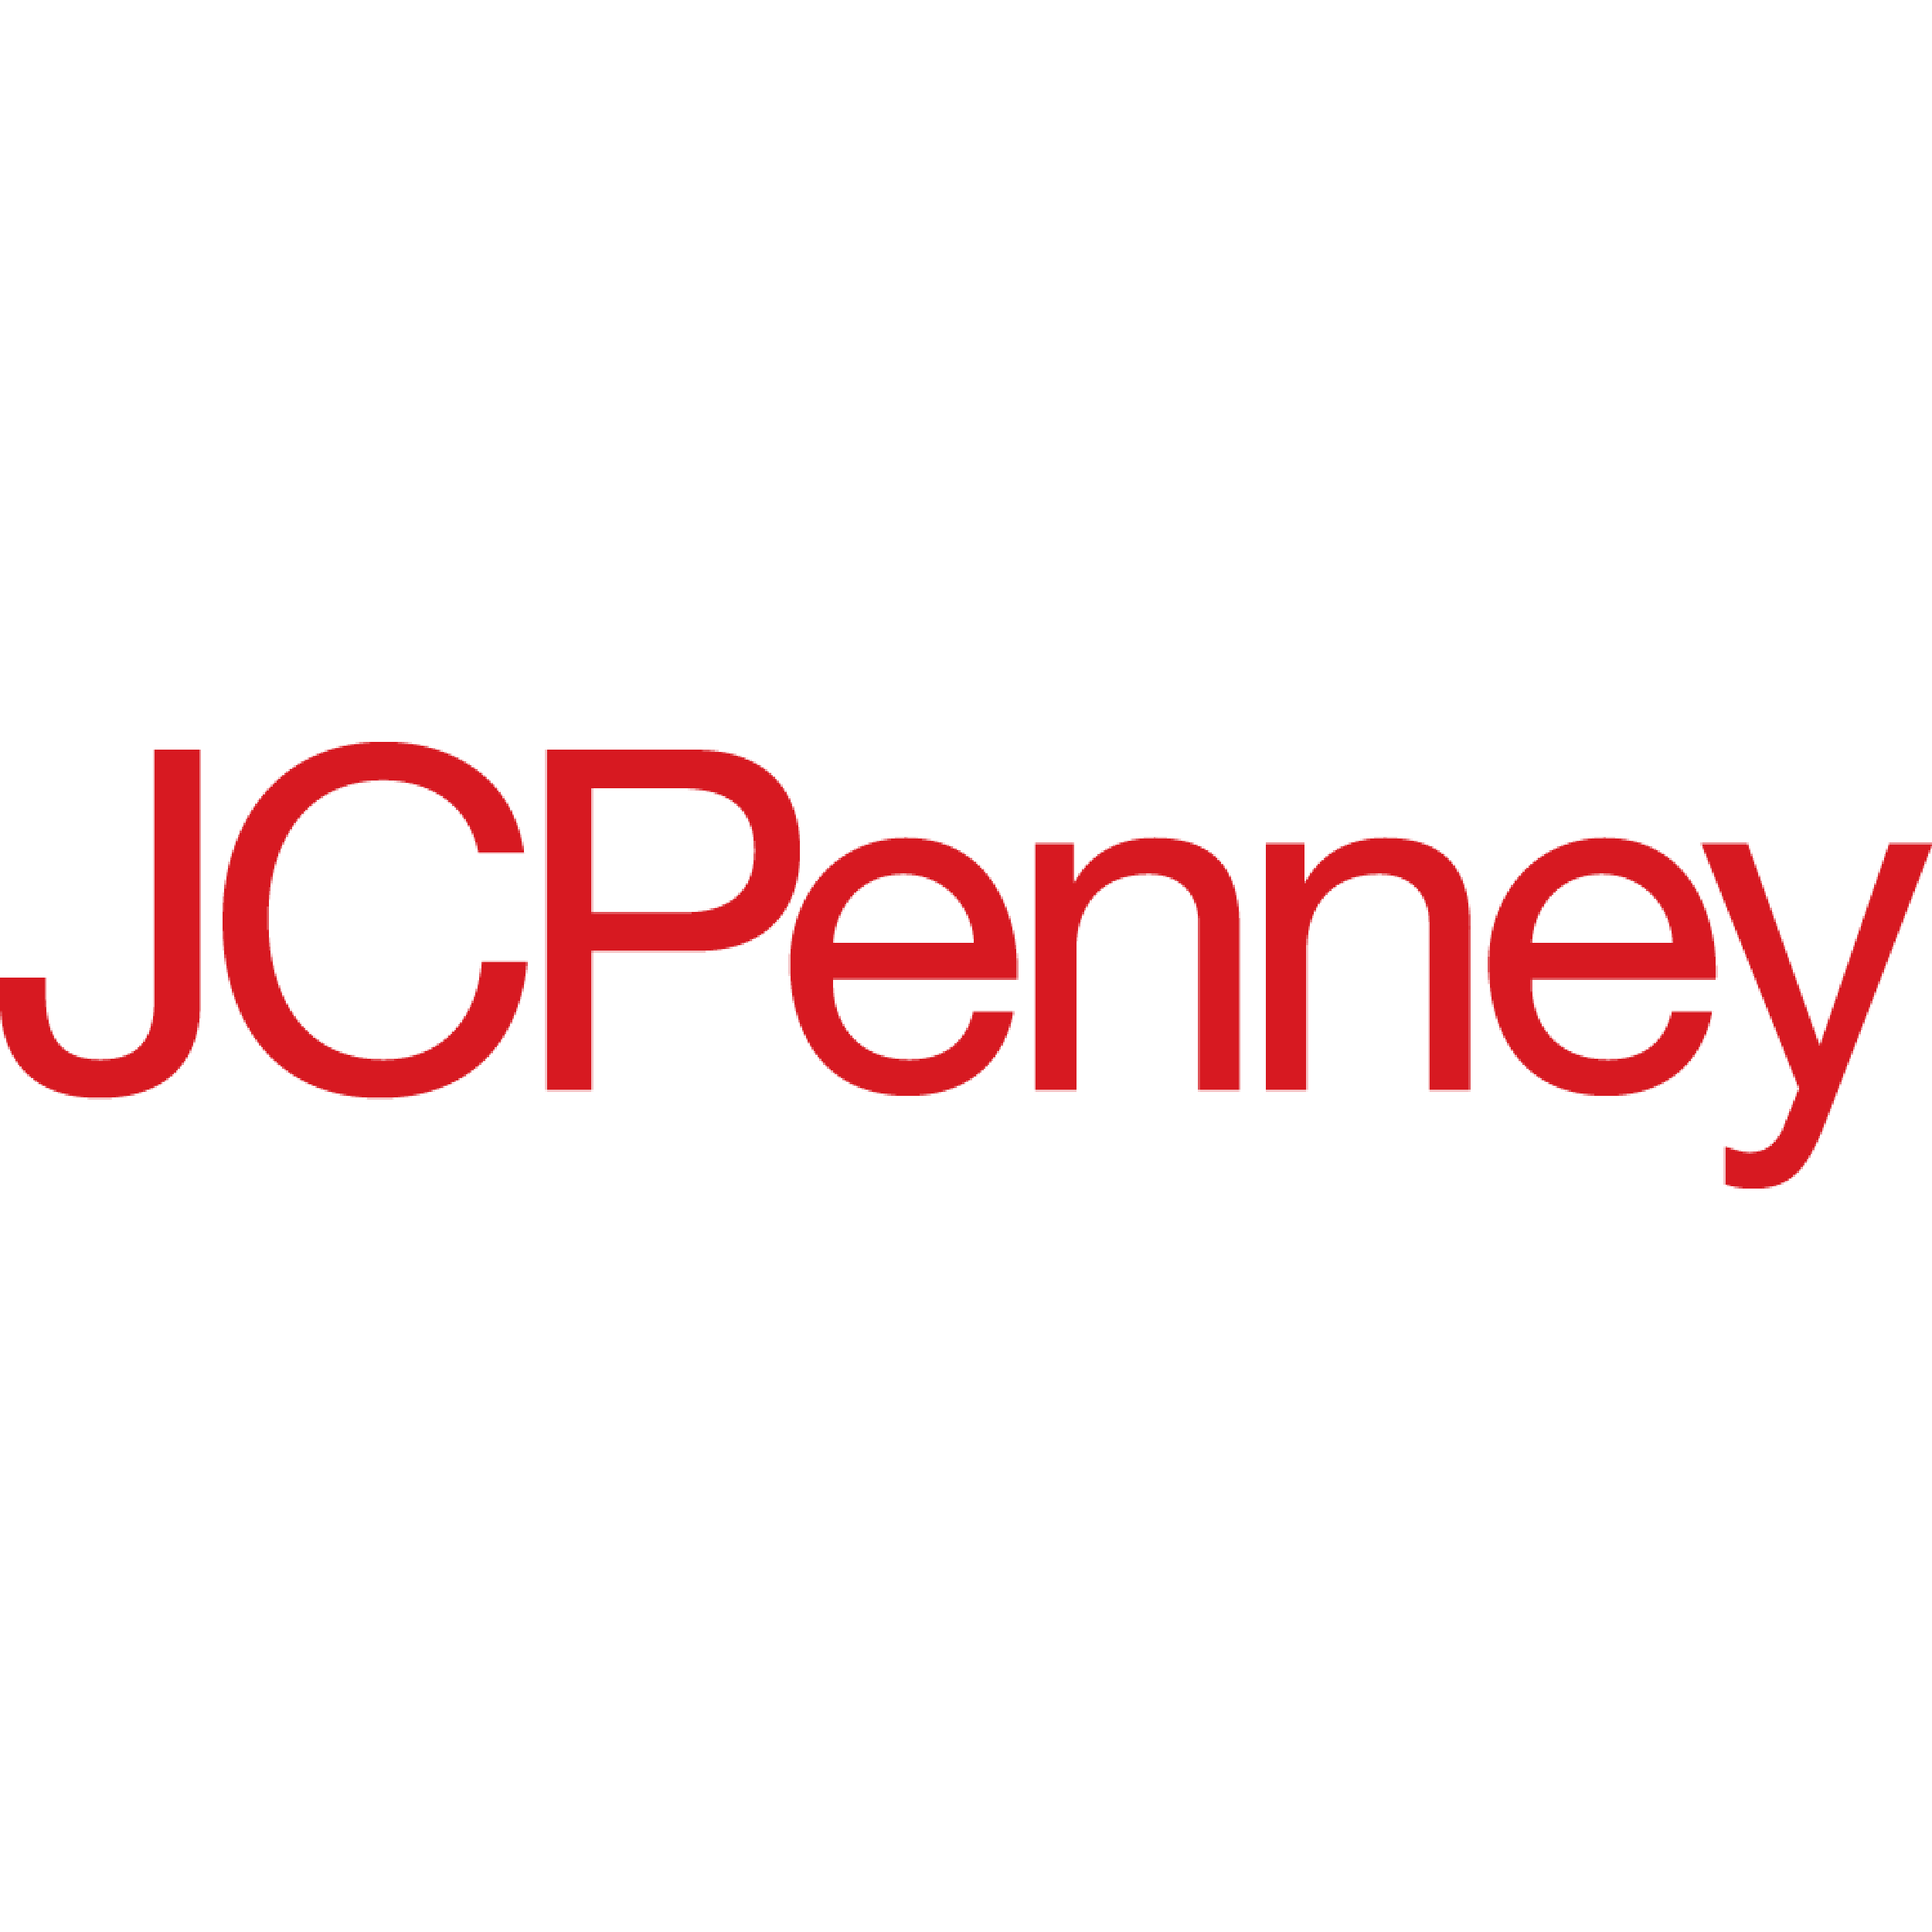 JCPenney - Hoover, AL - Department Stores